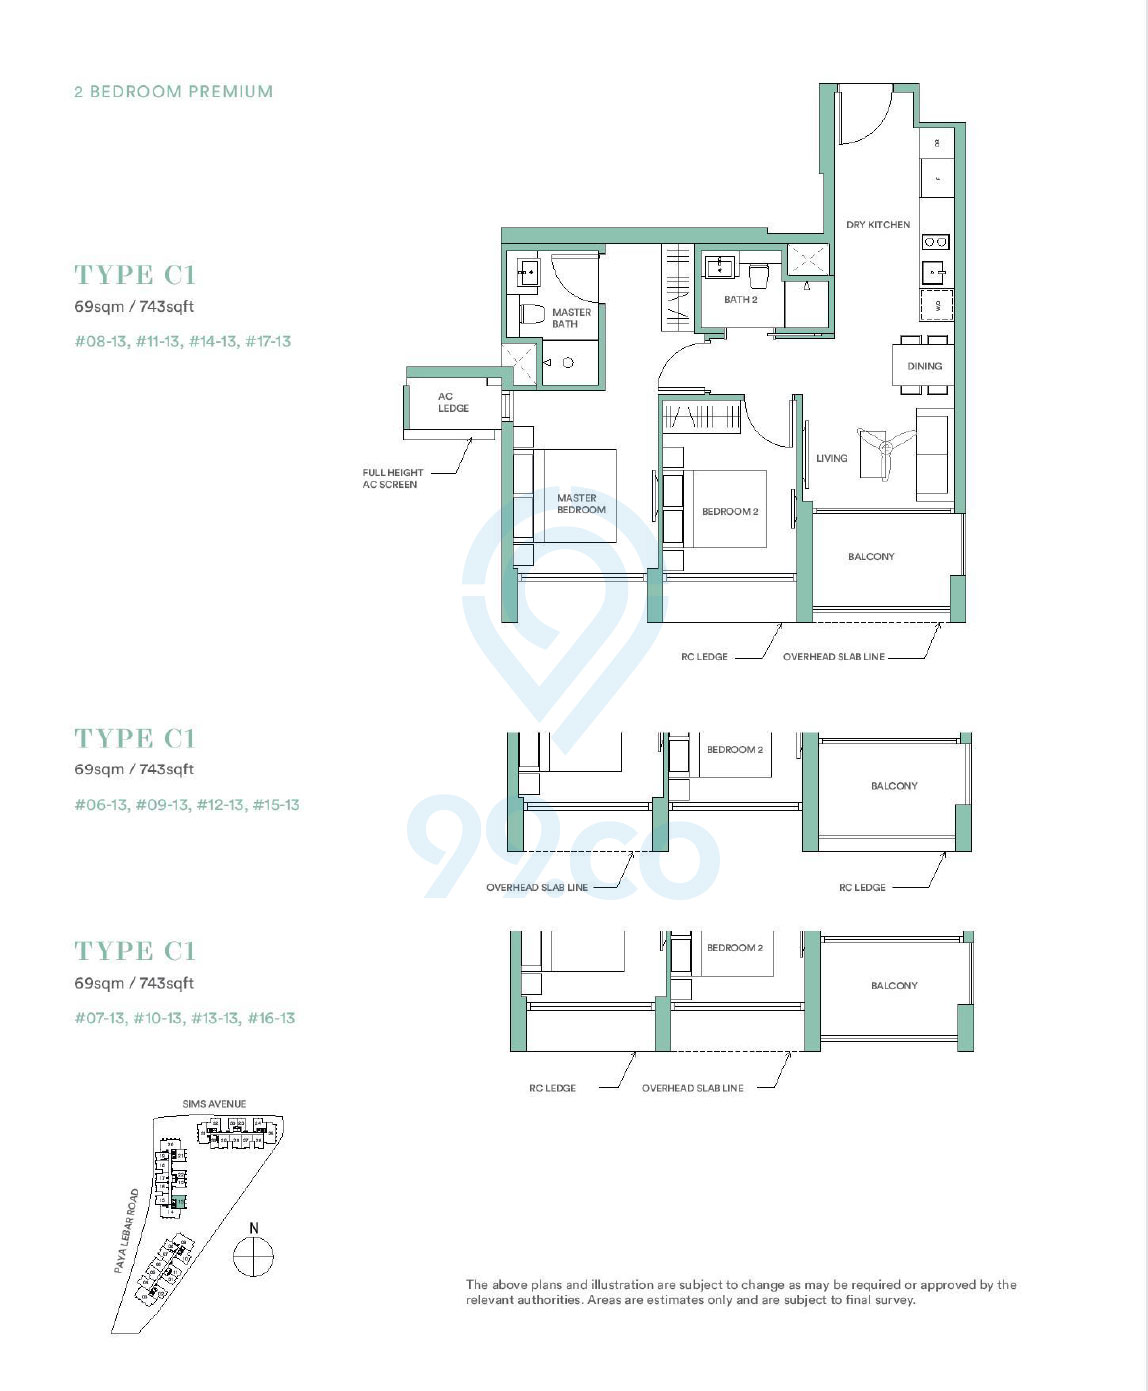 Park Place Residences 2 Bedroom Premium Floor Plan